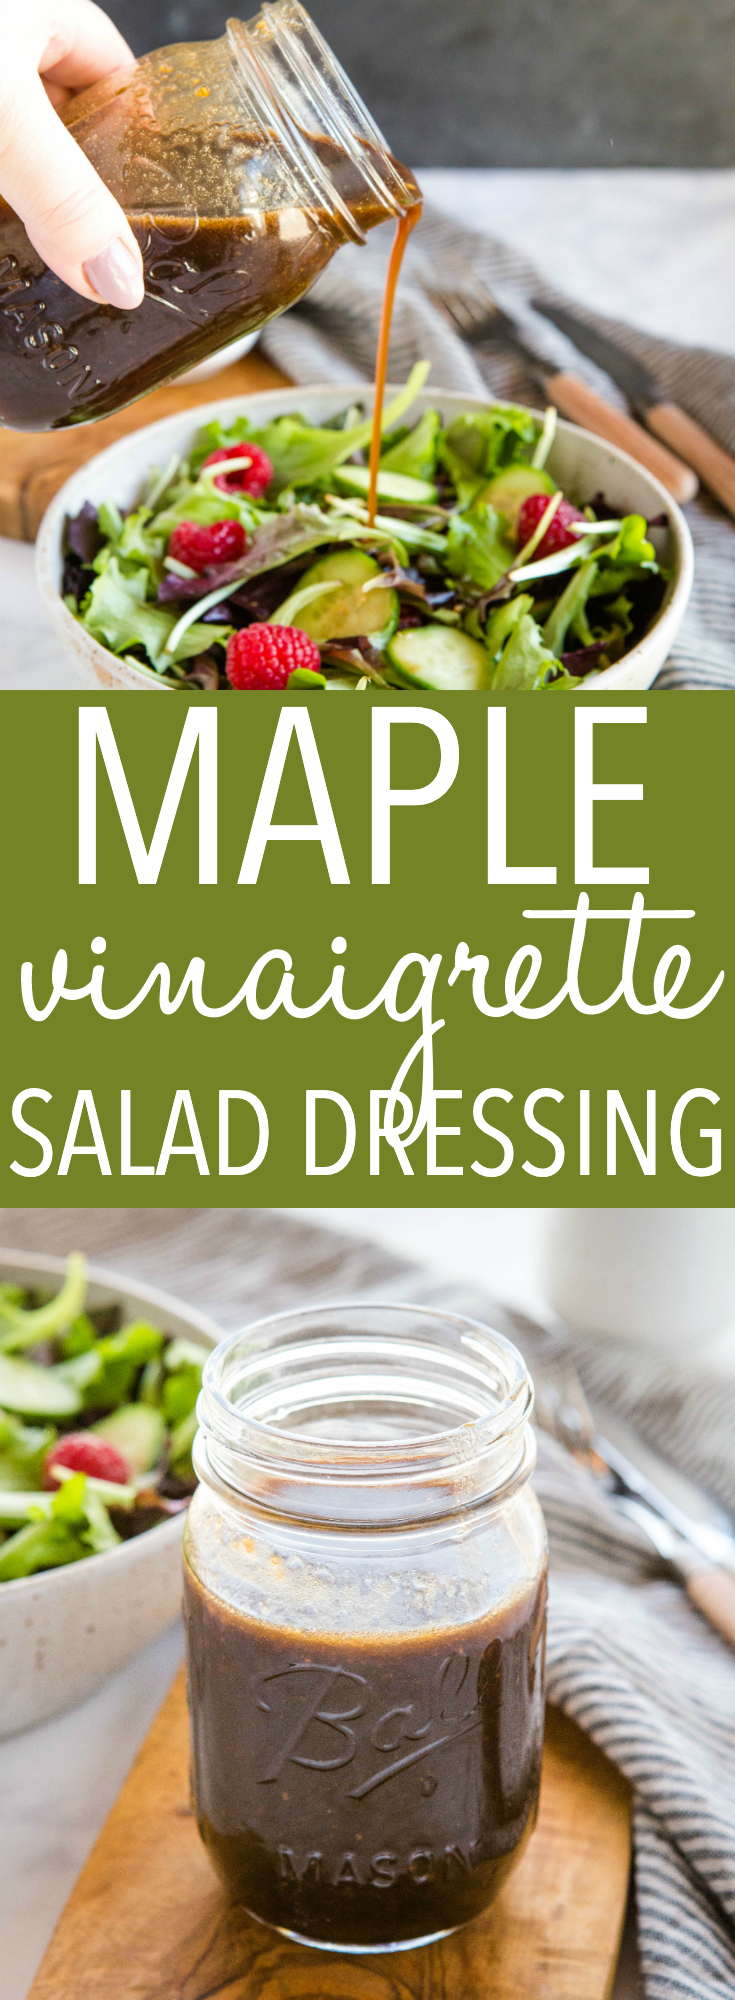 This Maple Balsamic Vinaigrette Salad Dressing is an easy-to-make salad dressing that's perfect on all your favourite salads! It's low in fat and made with only 5 simple ingredients! Recipe from thebusybaker.ca! #salad #saladdressing #vinaigrette #maplesyrup #homemade #vegan #vegetarian #plantbased #healthy #refinedsugarfree #wholefoods via @busybakerblog